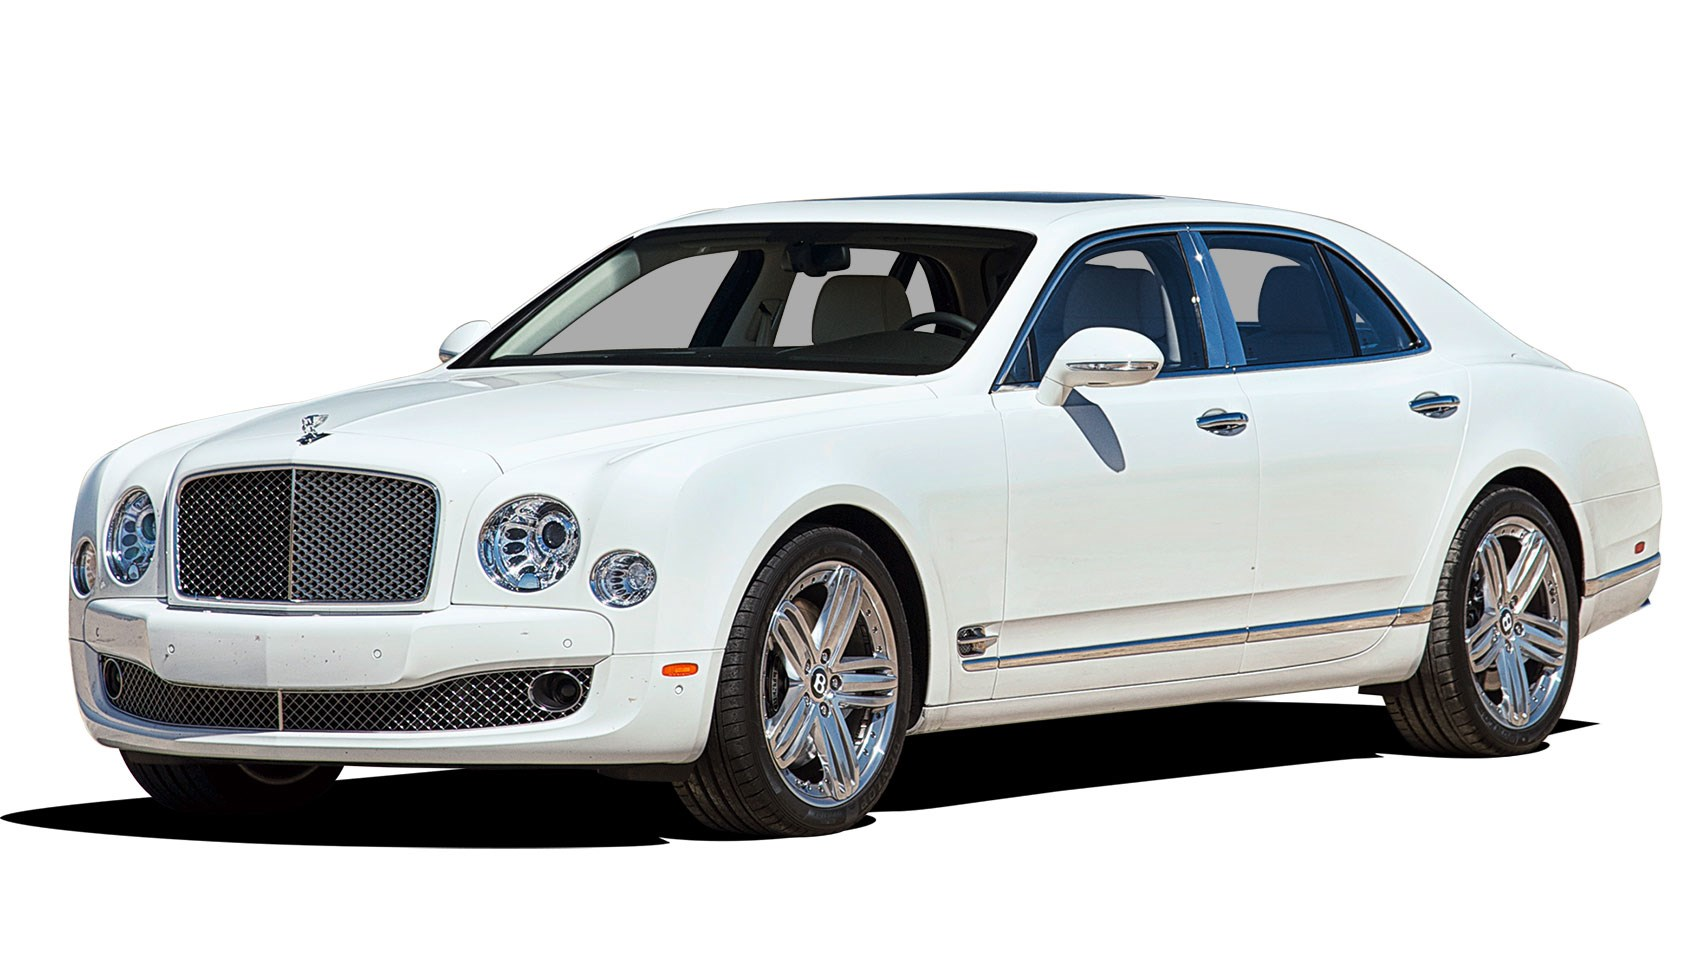 price of new fast engine specification speed bentley racing model car a top